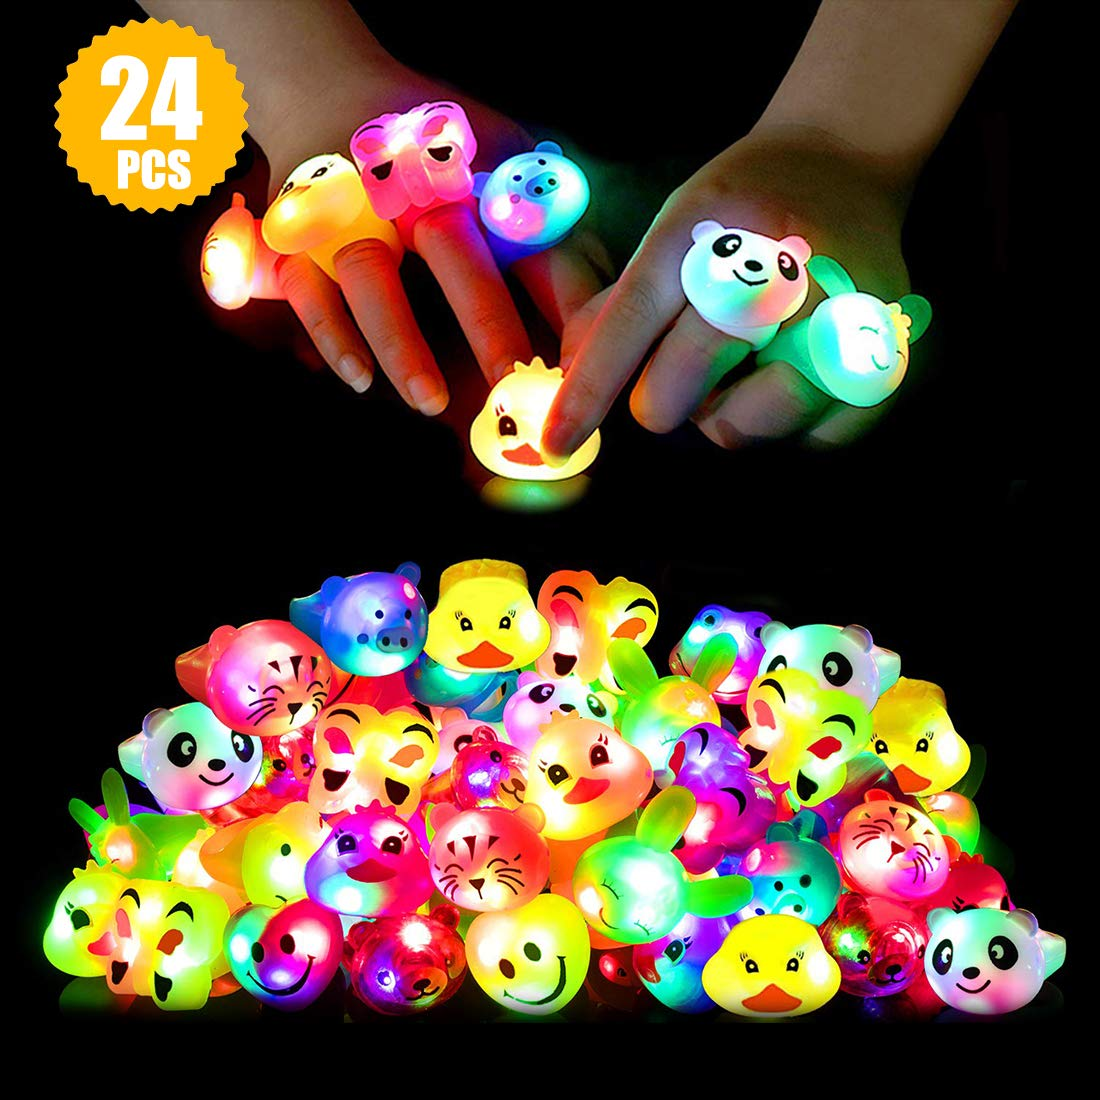 Light Up Rings Birthday Party Favors for Kids Prizes Flashing 24 Pack LED Jelly Rings Novelty Bulk Toys Boys Girls Gift Glow in The Dark Party Supplies by LionMoc